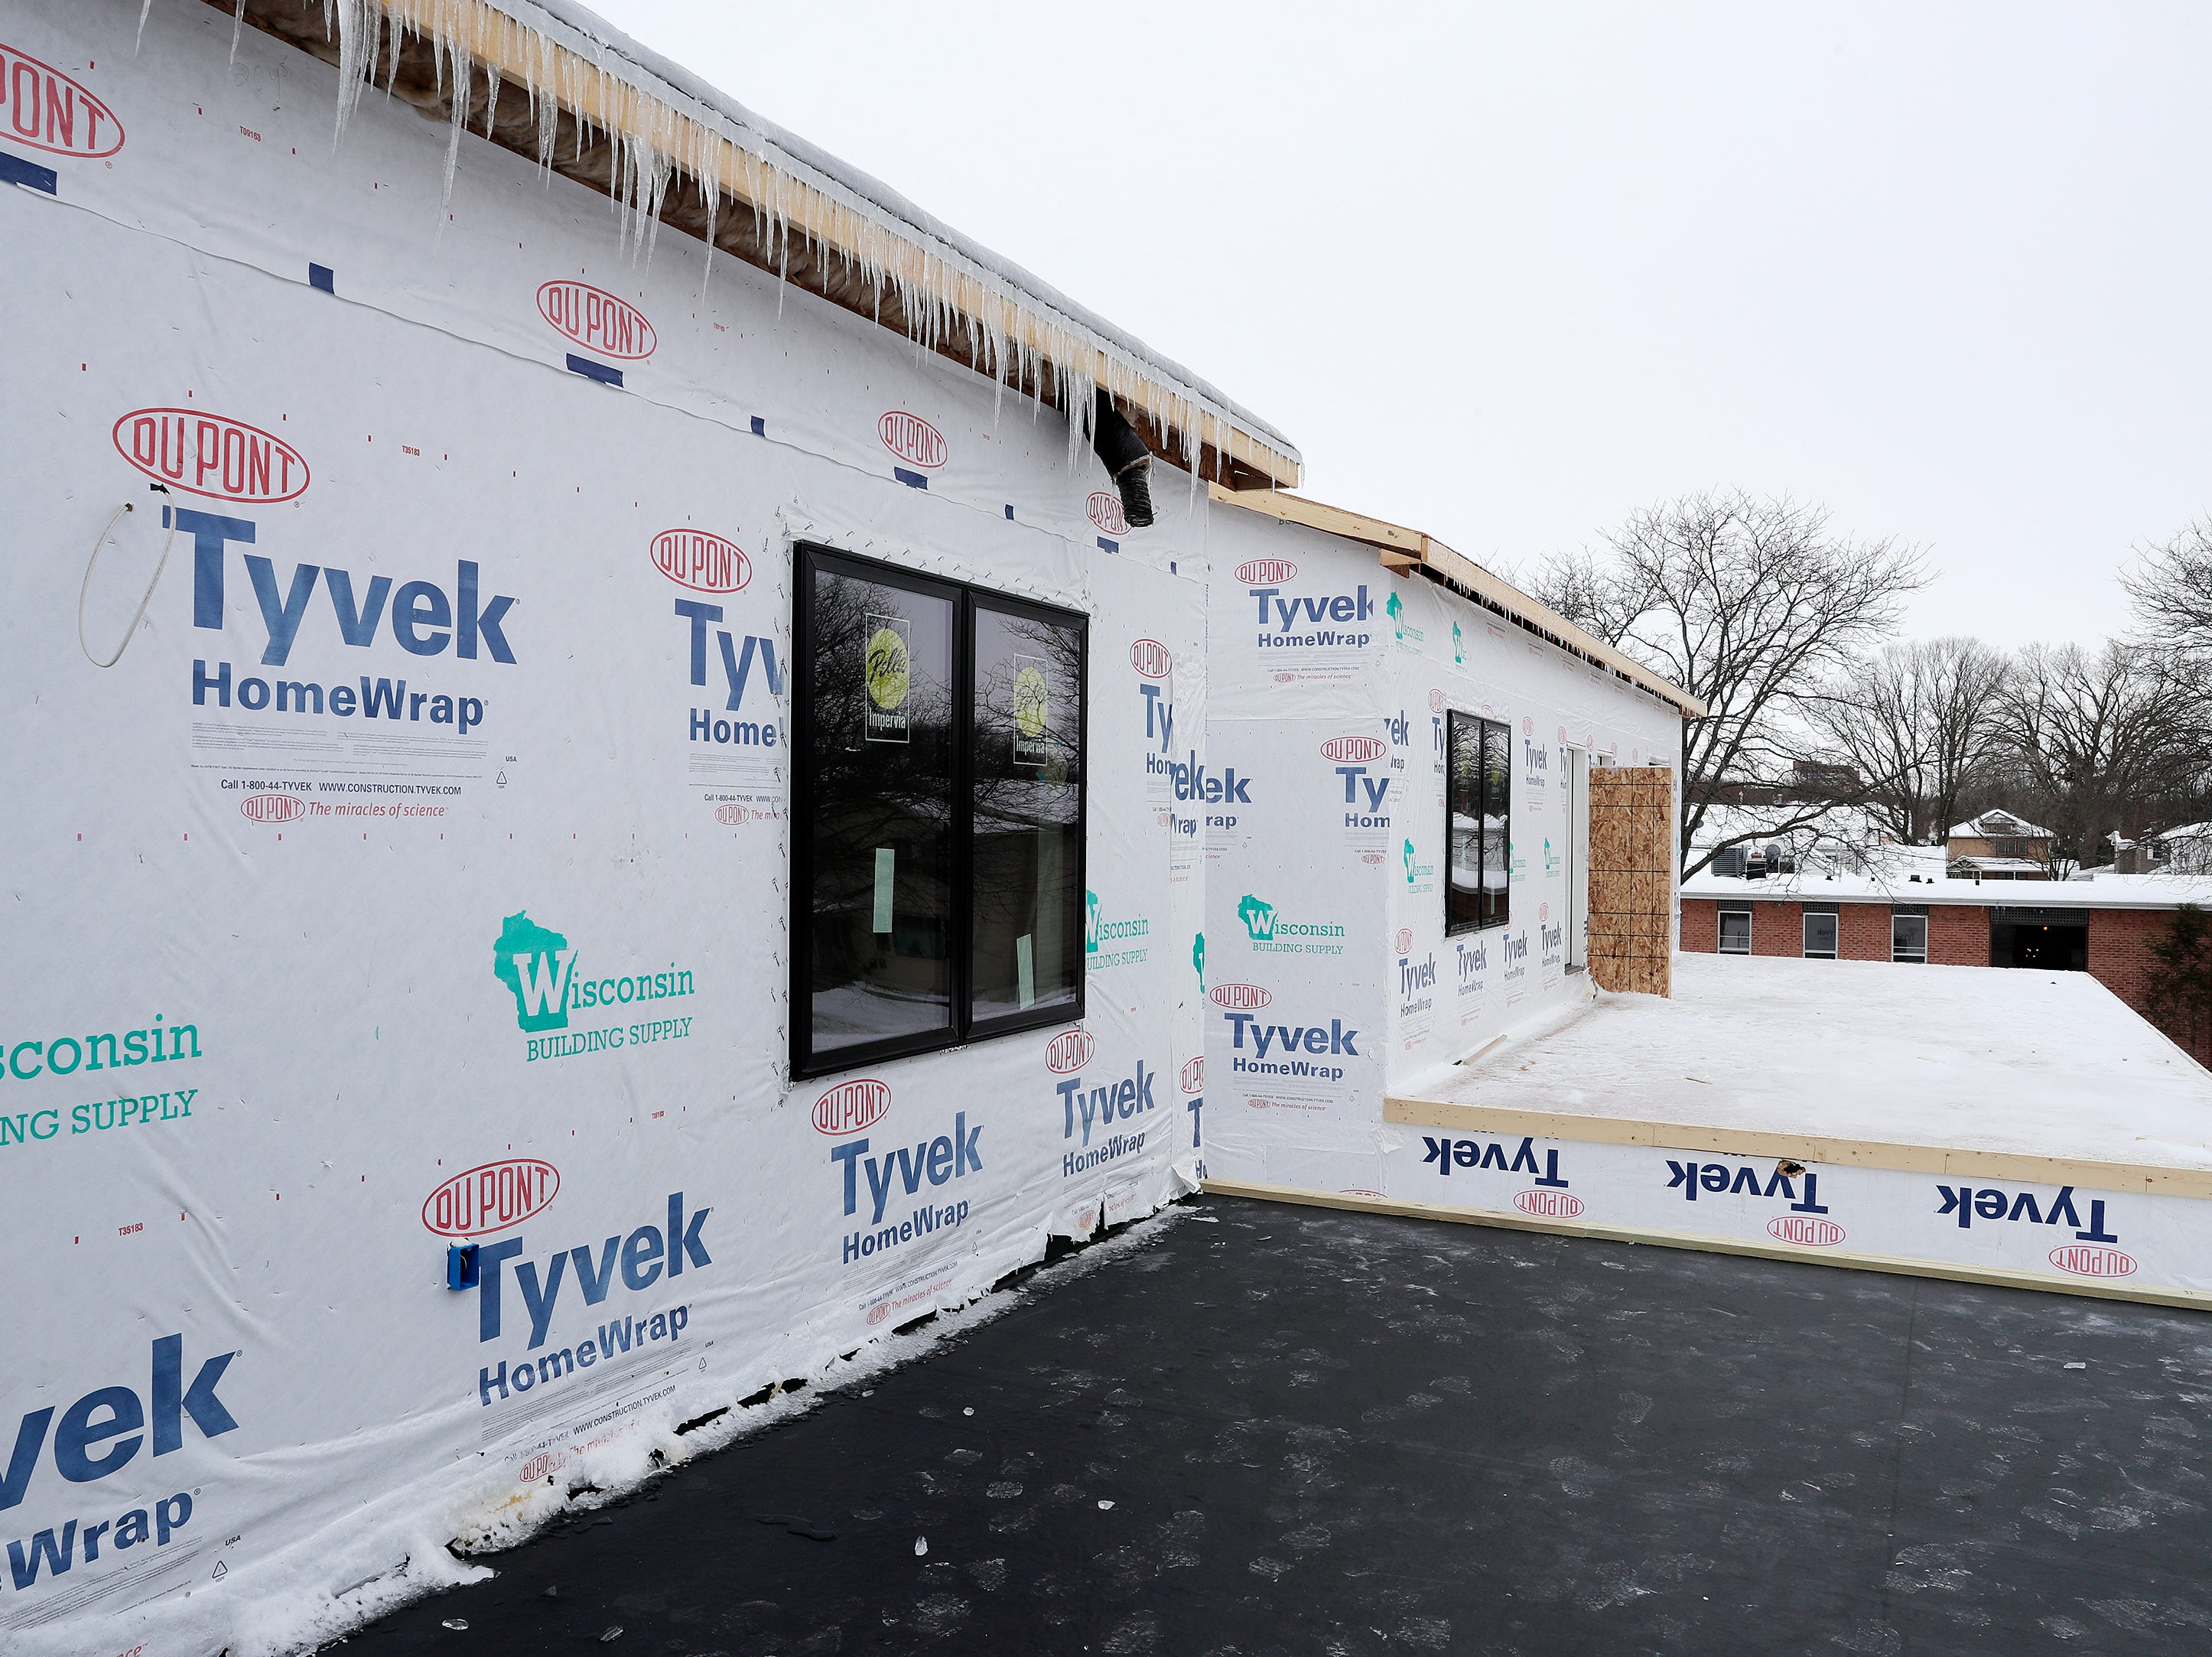 Garage top patios are shown at the under-construction townhouses on the corner of Van Buren and Cherry streets on Tuesday, February 26, 2019 in Green Bay, Wis.